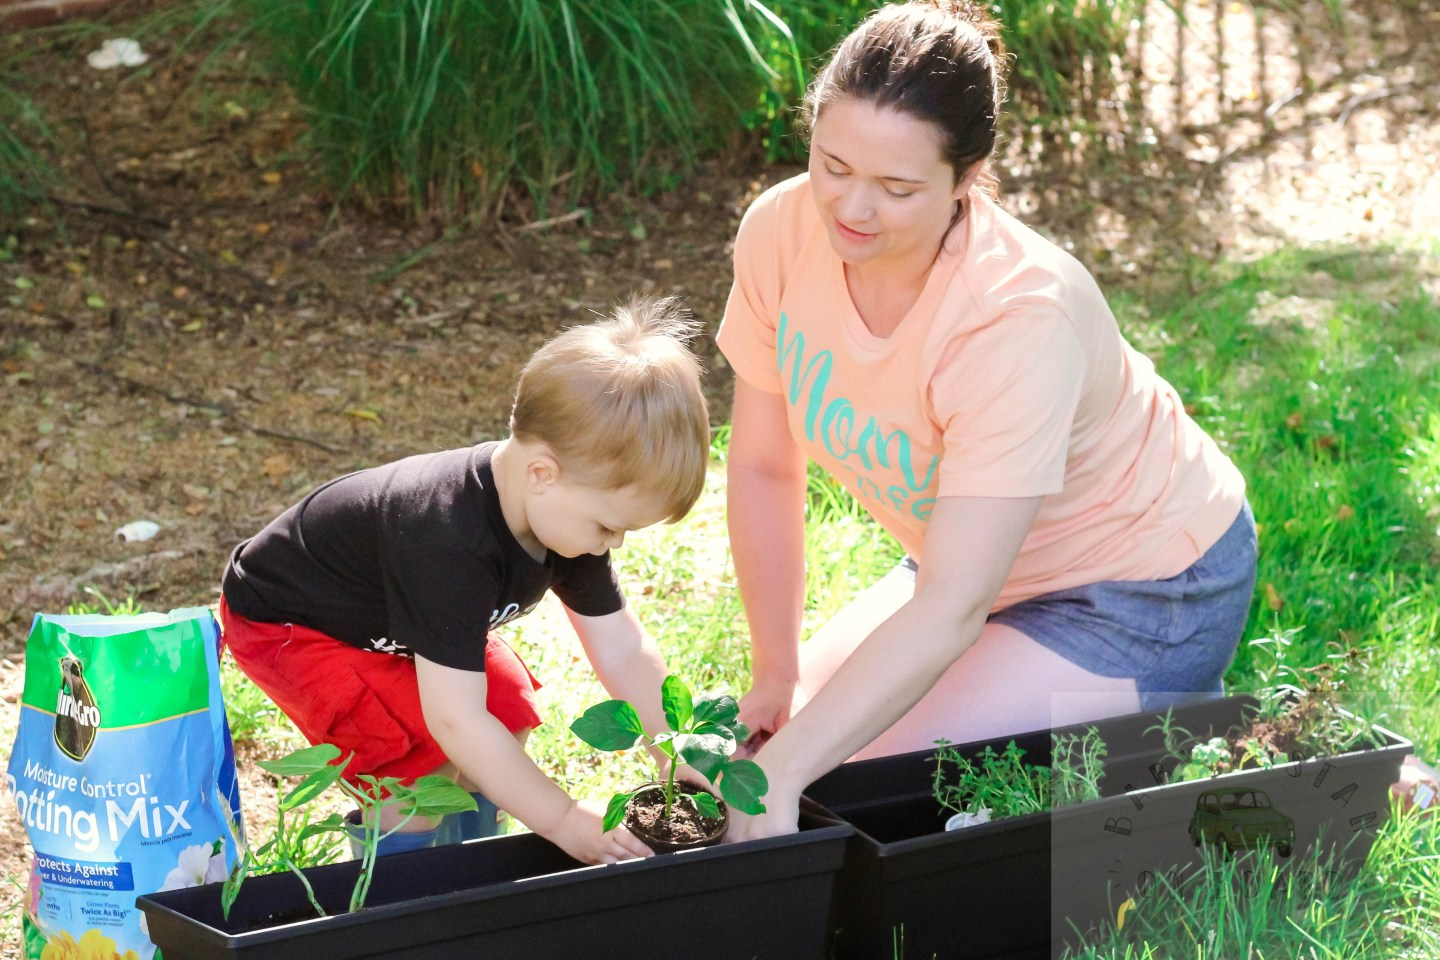 Planting with toddlers by popular DC mommy blogger Baby Castan on Board